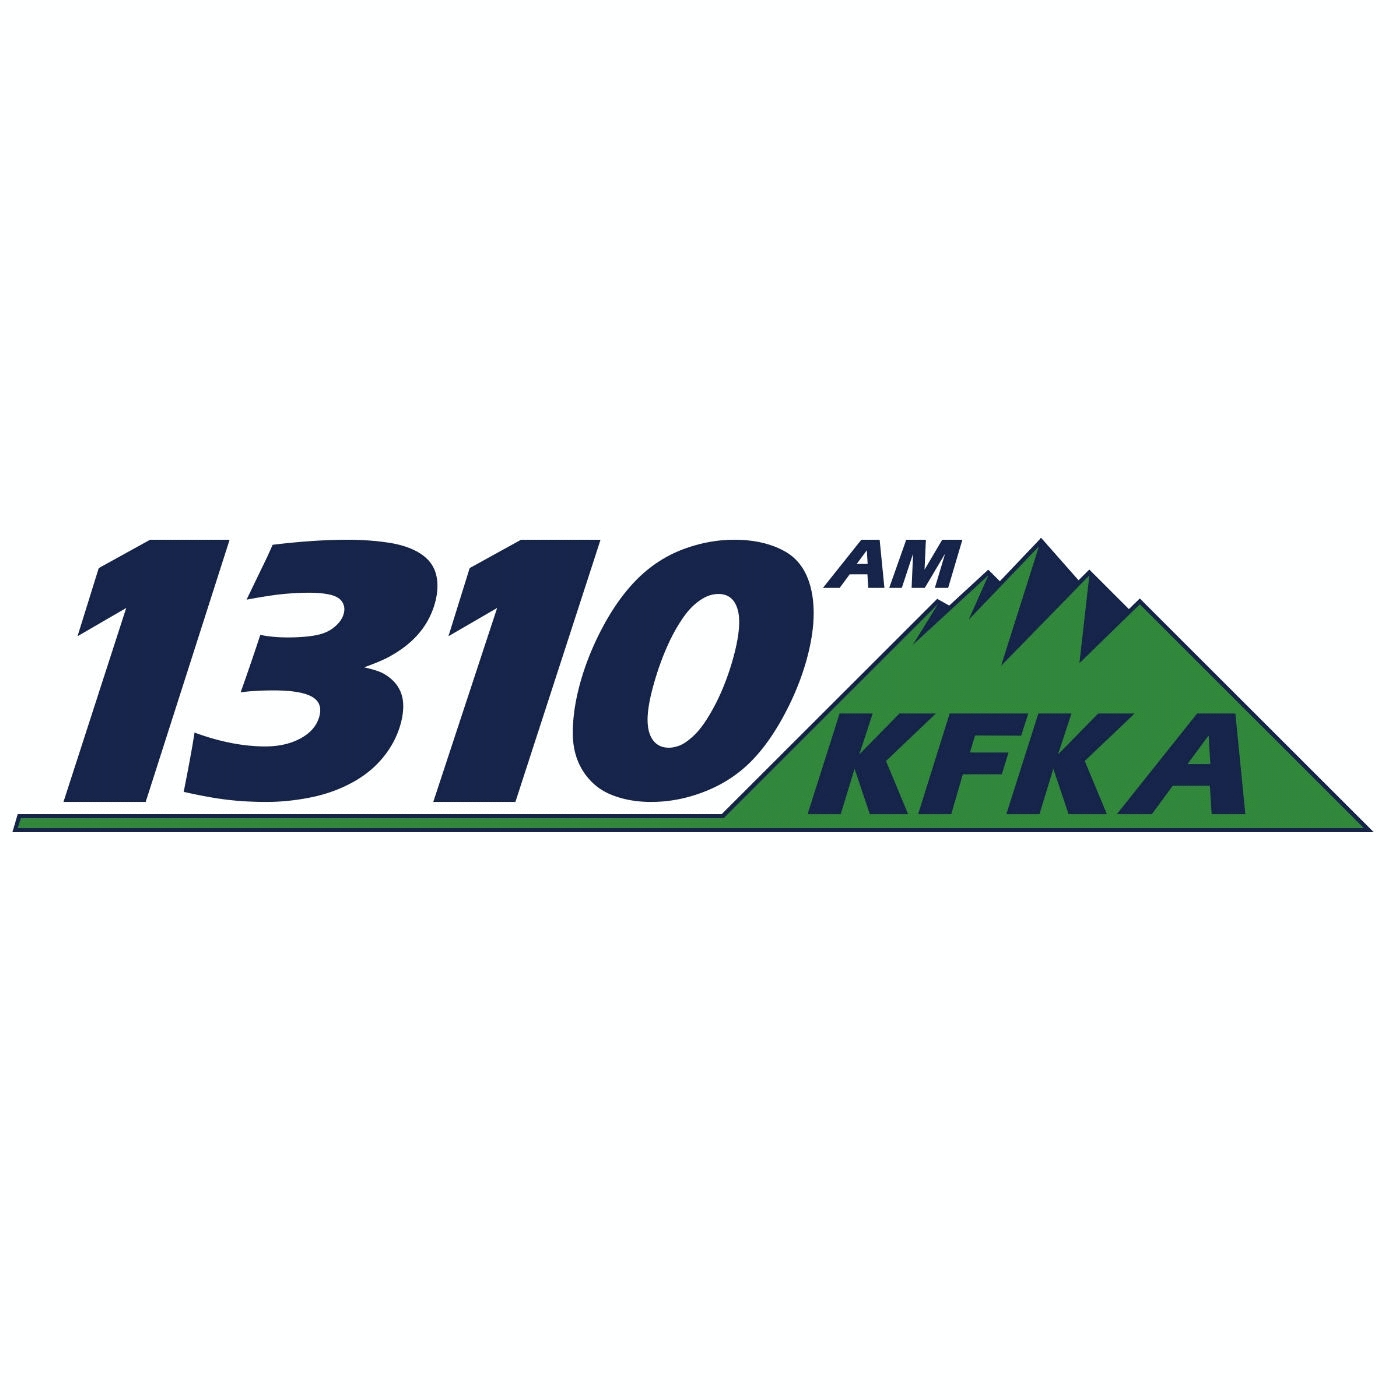 Mornings With Gail - 1310 KFKA